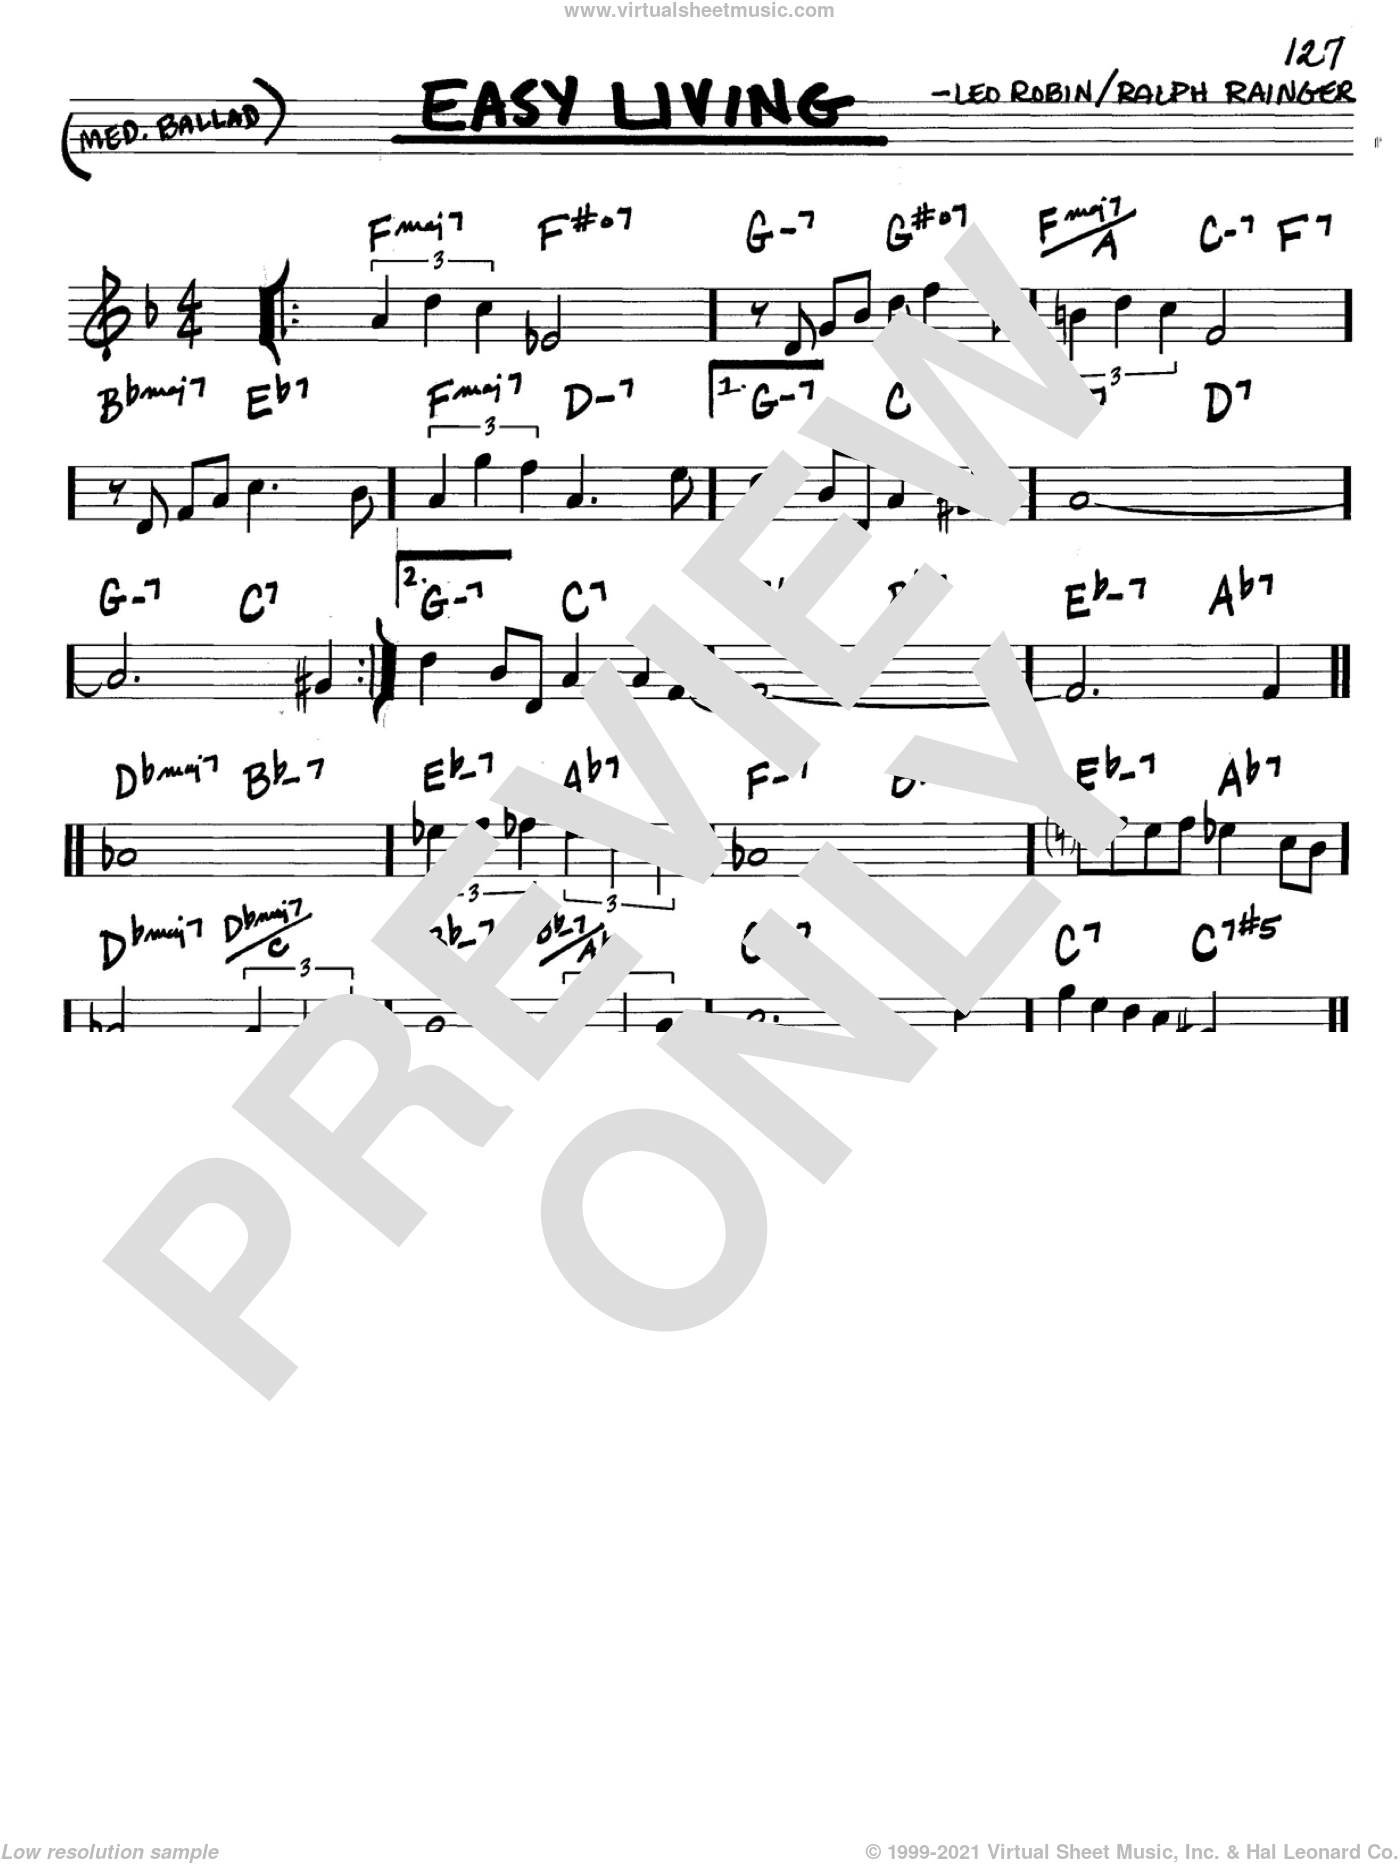 Easy Living sheet music for voice and other instruments (in C) by Billie Holiday, Leo Robin and Ralph Rainger, intermediate skill level